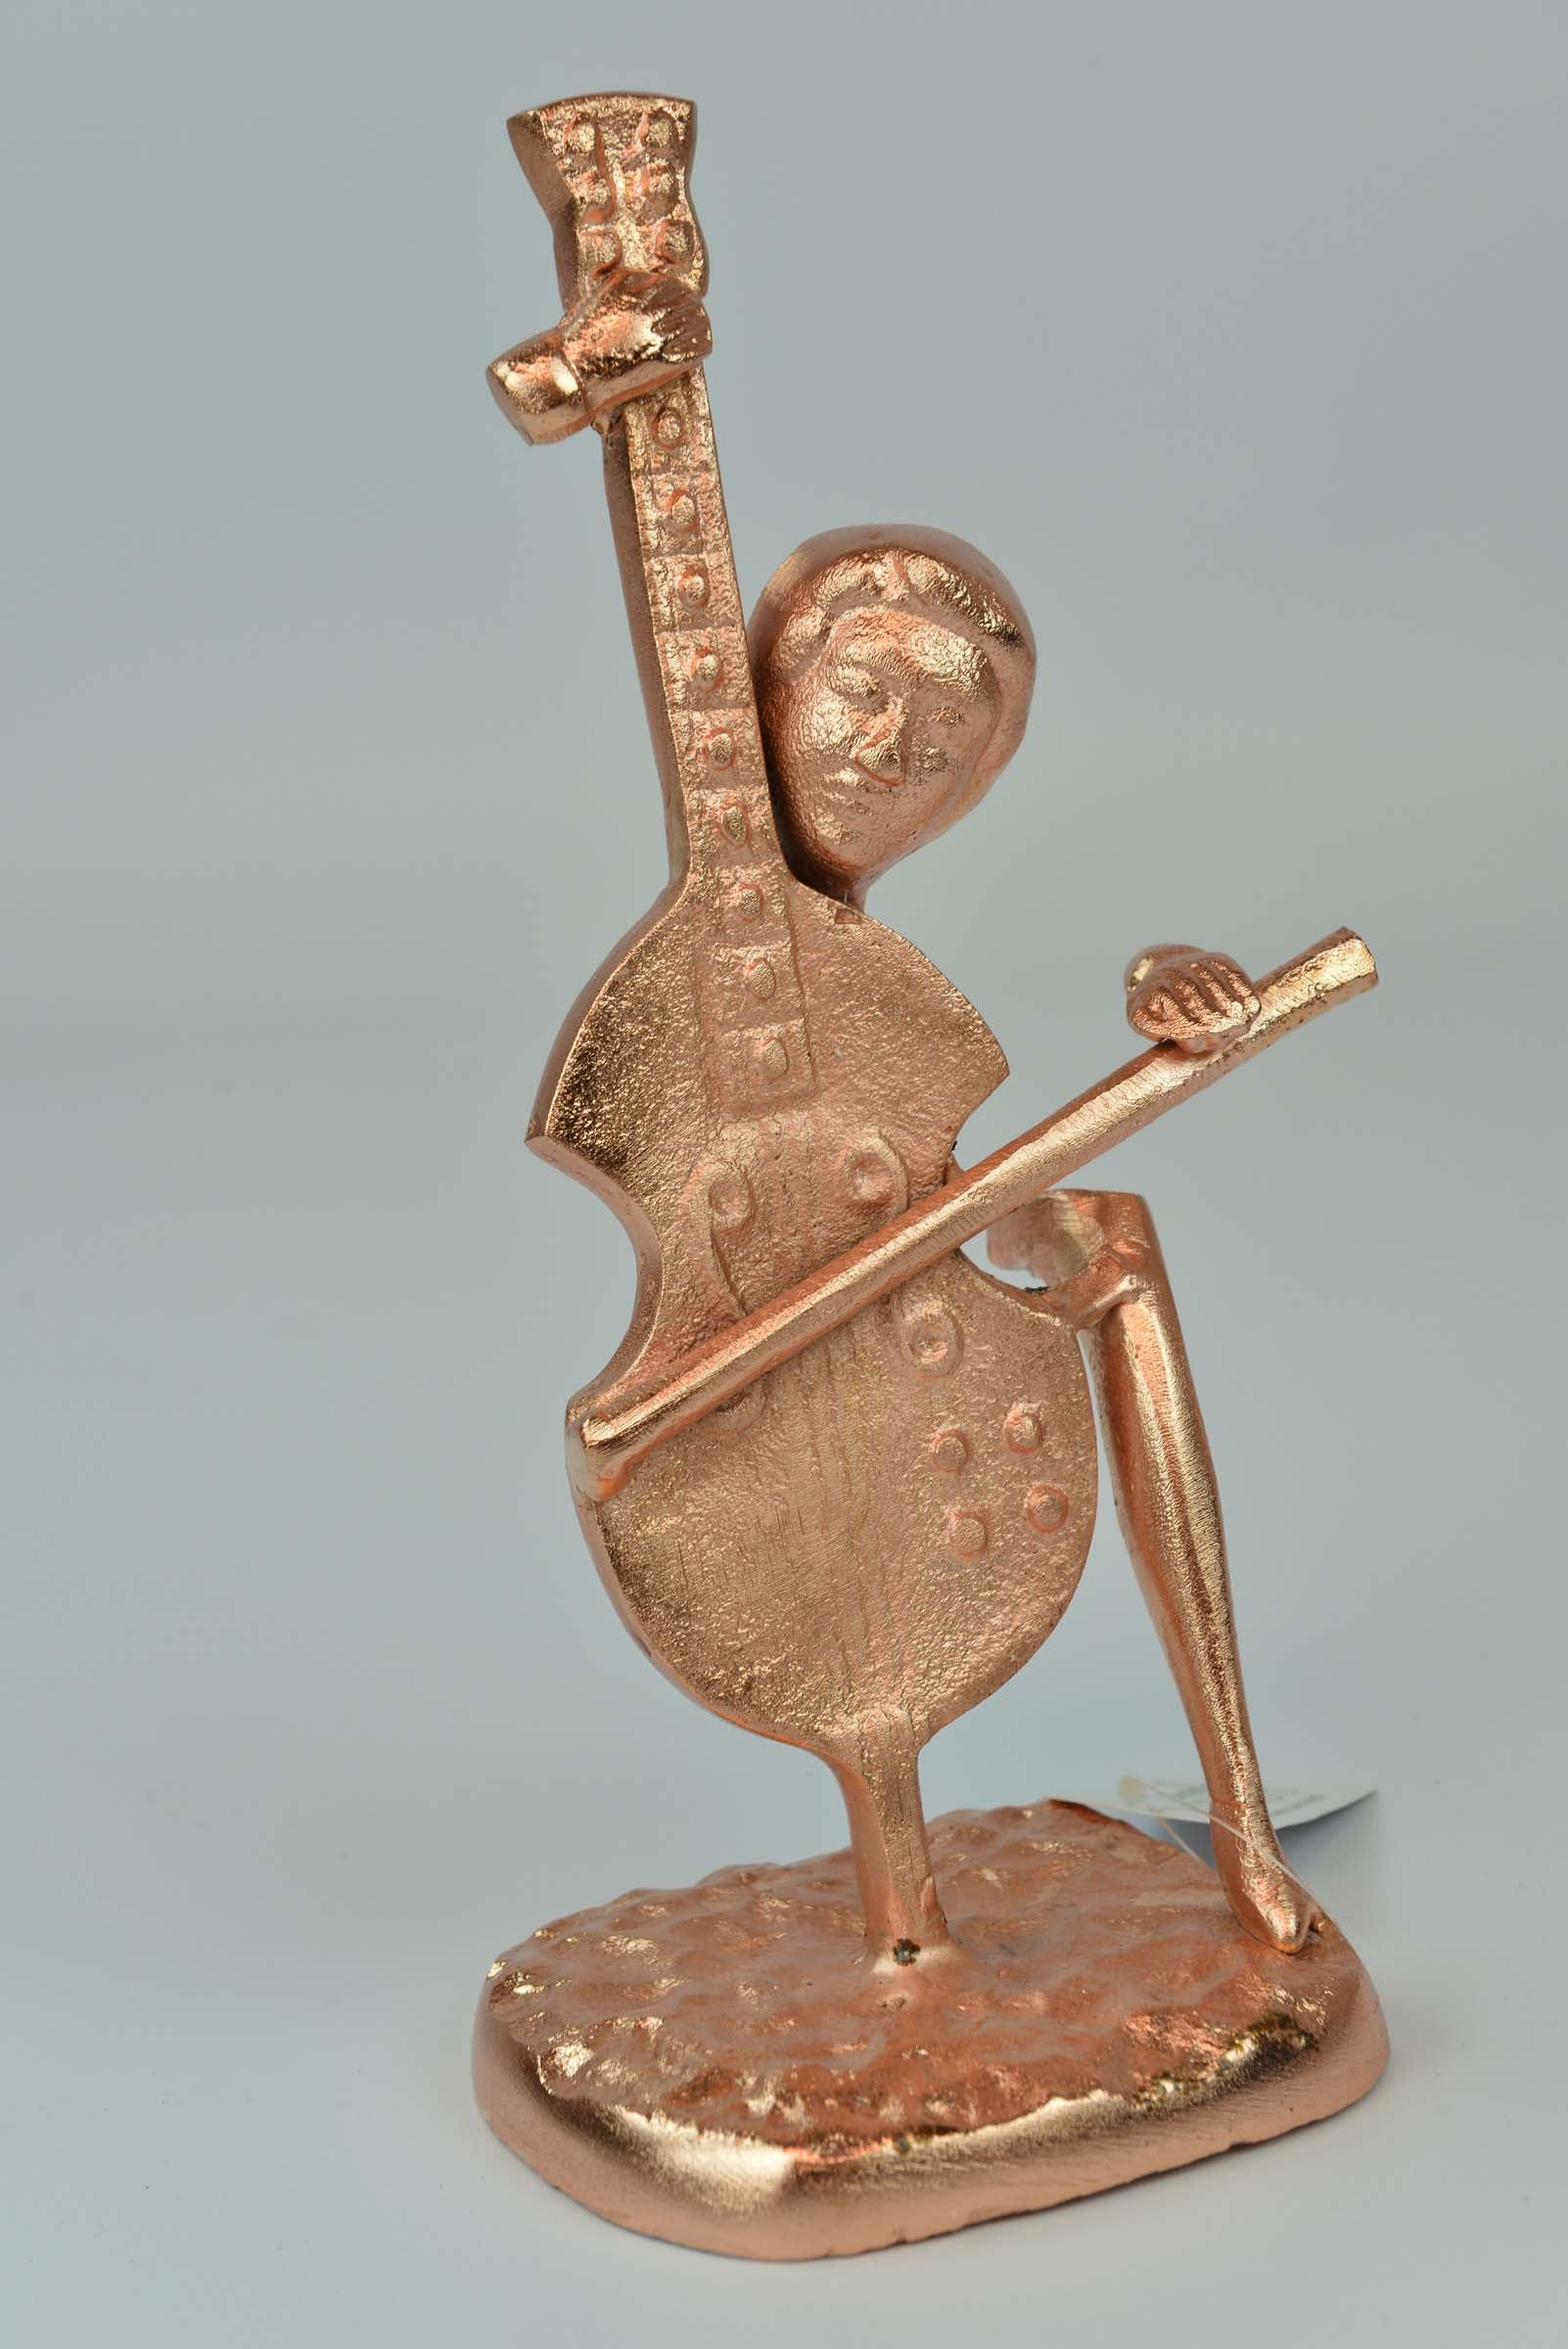 Cello Playing Musician Ornament - Simply Roka